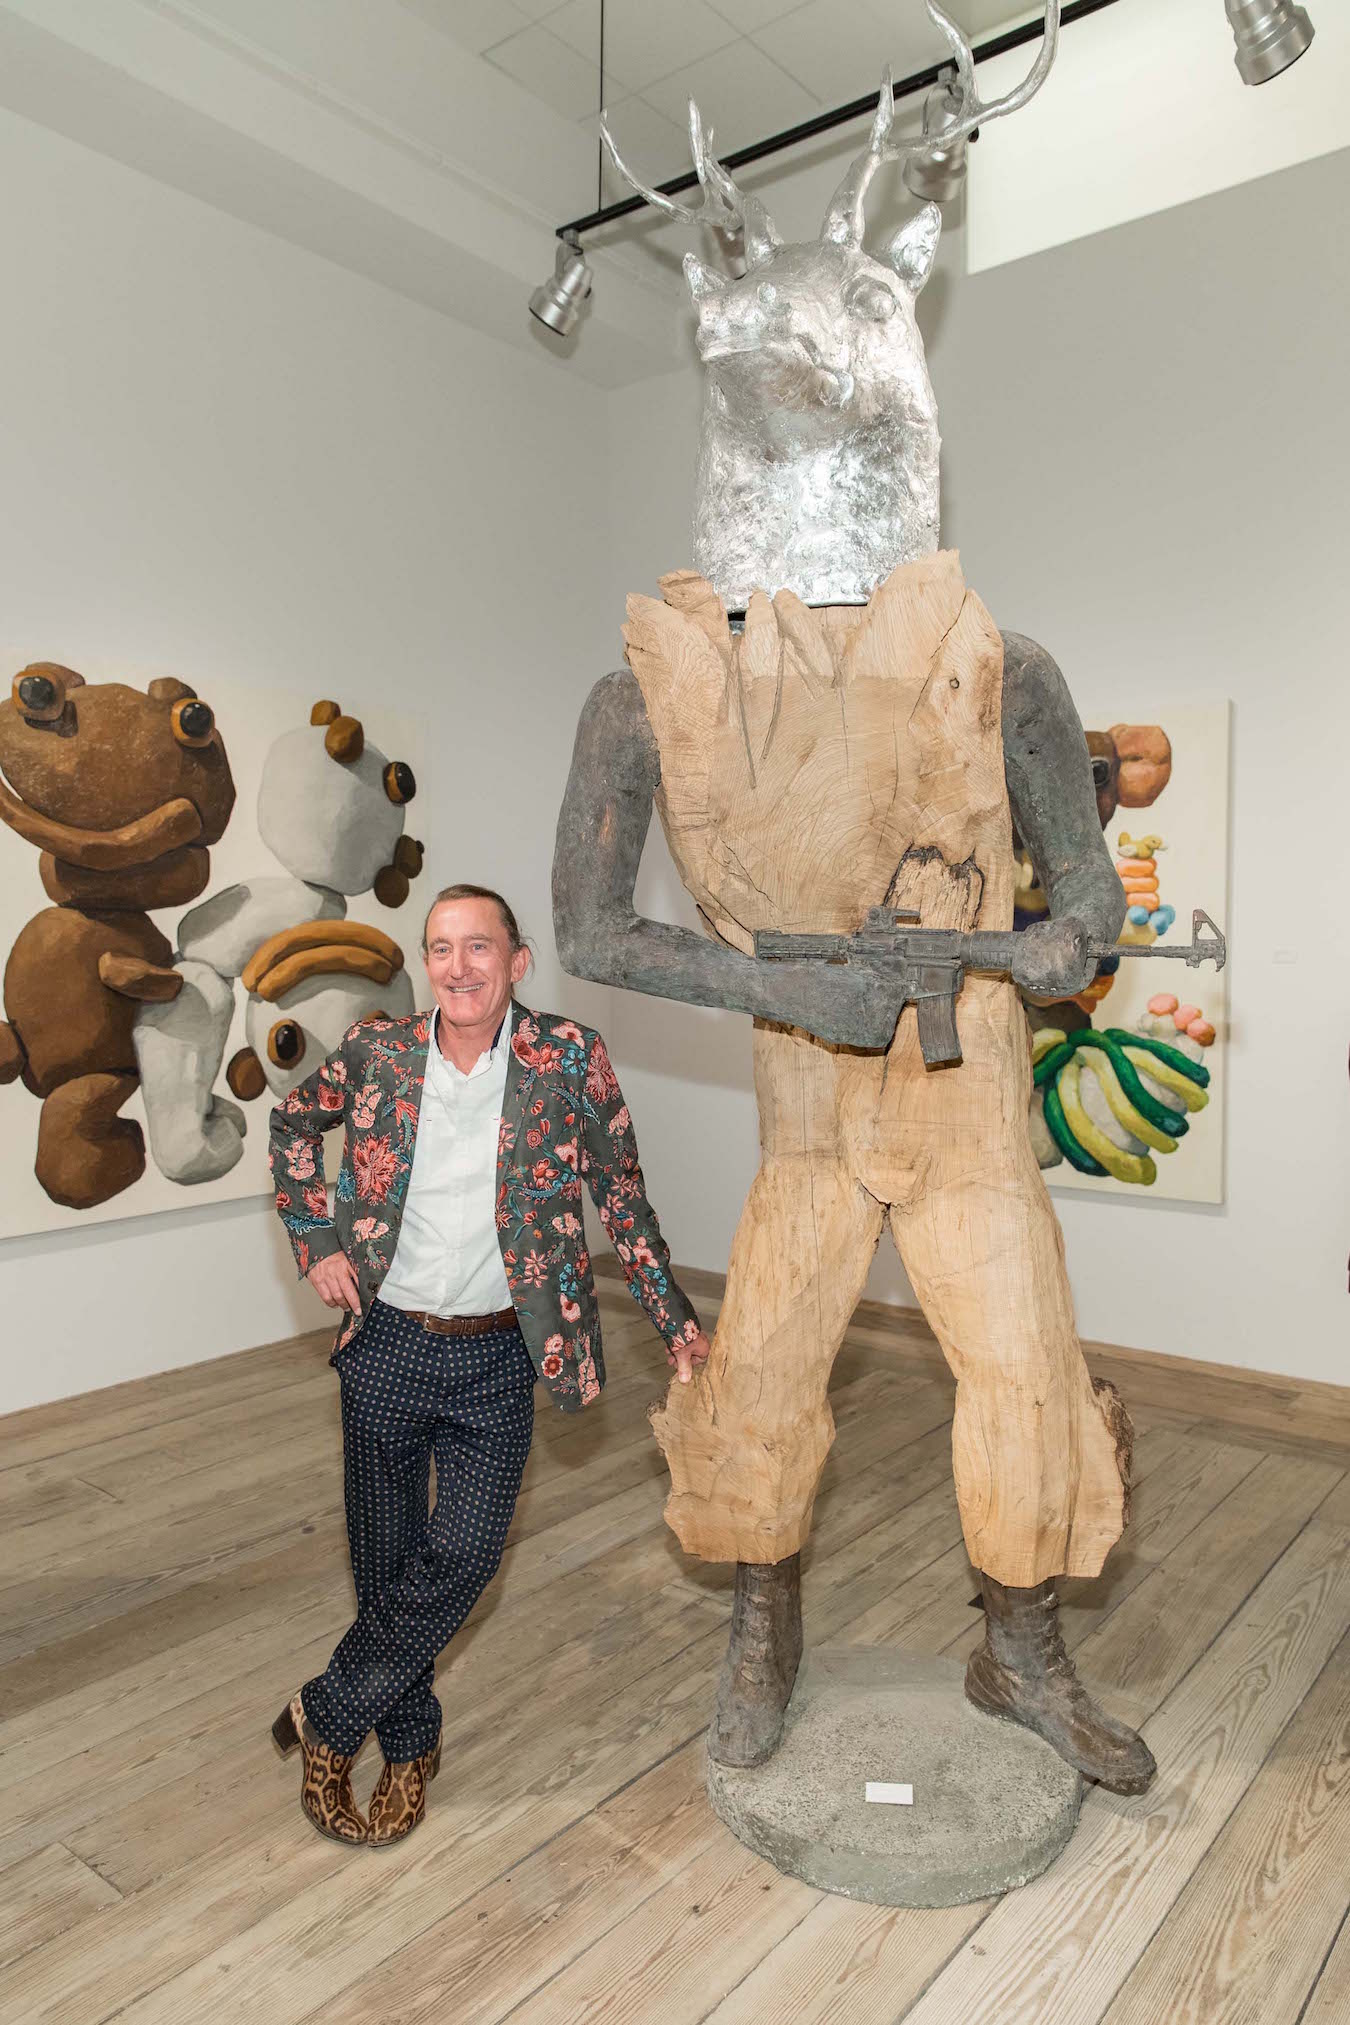 Harry Siter poses with his sculpture